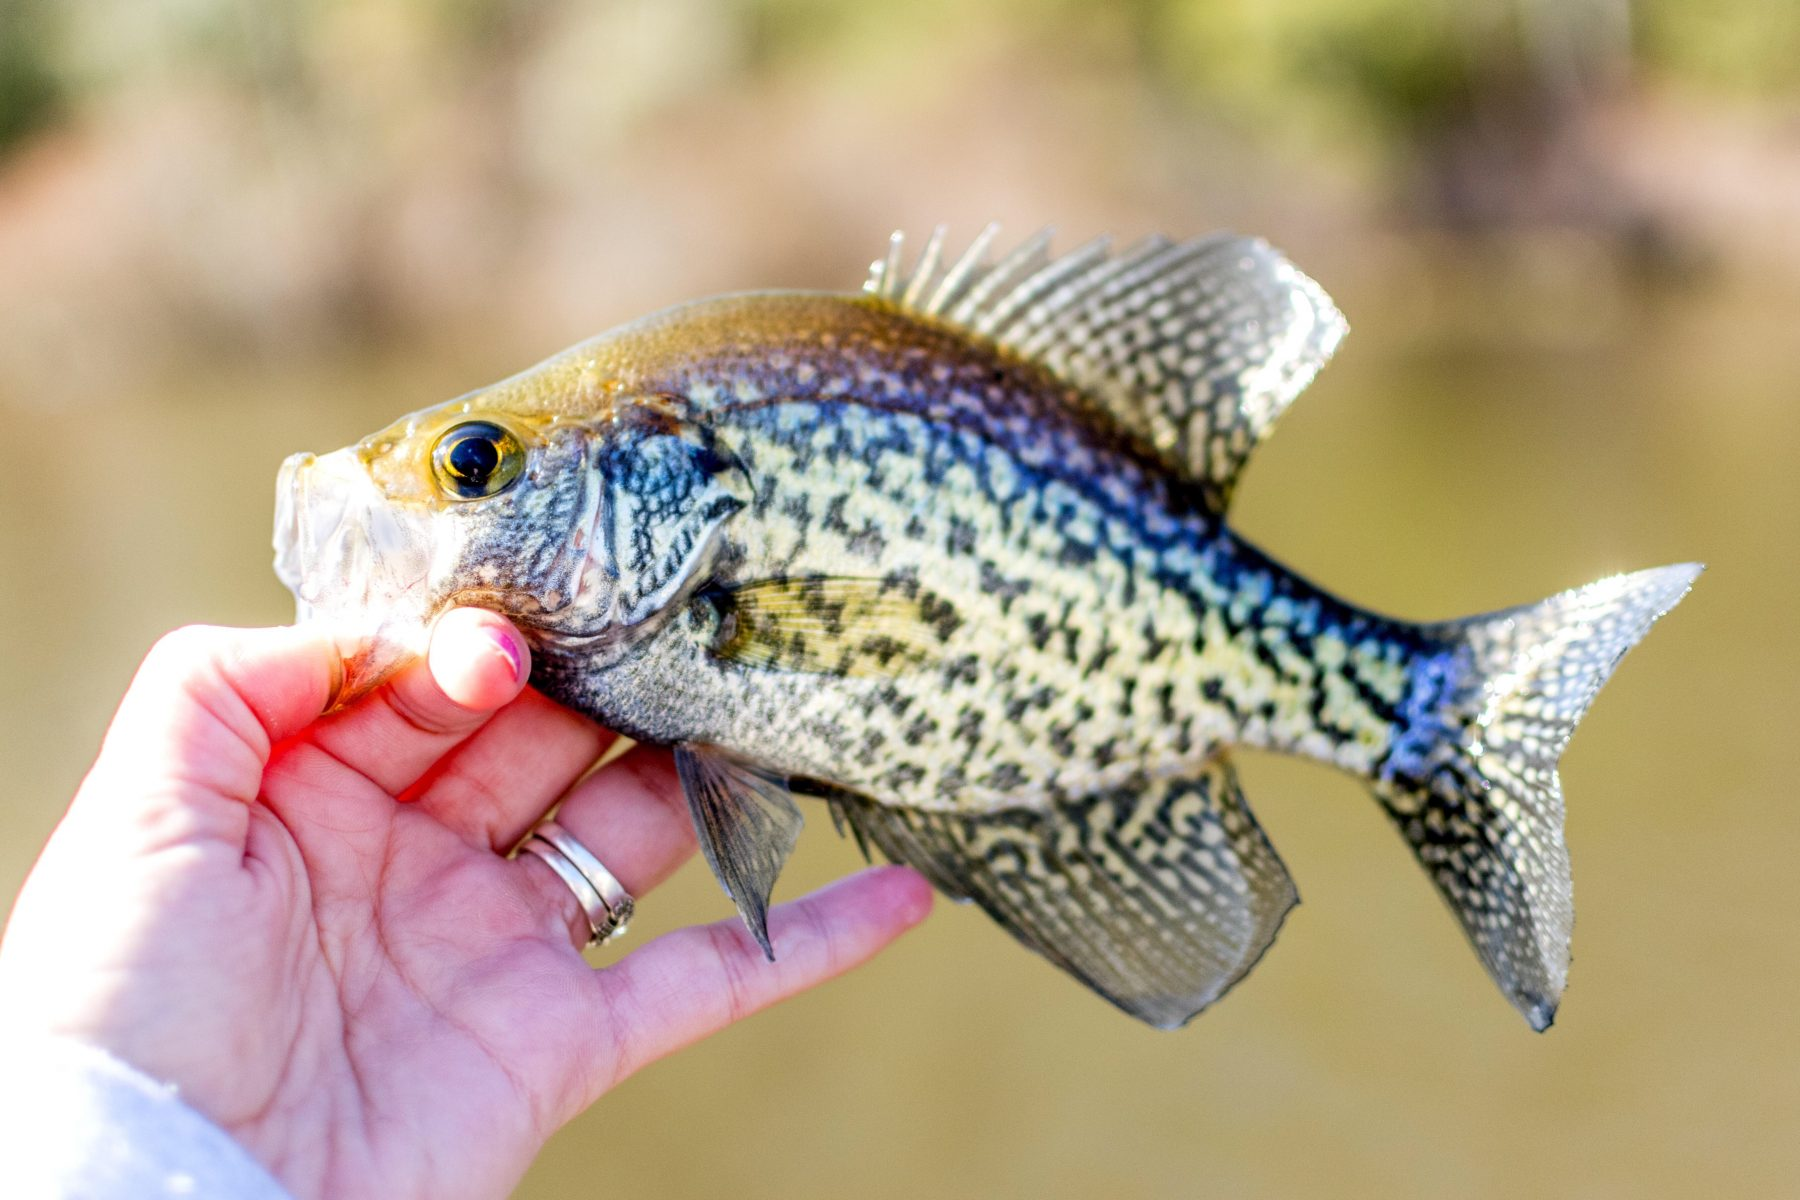 Crappie Fishing | How to Catch Crappies? Fishing app